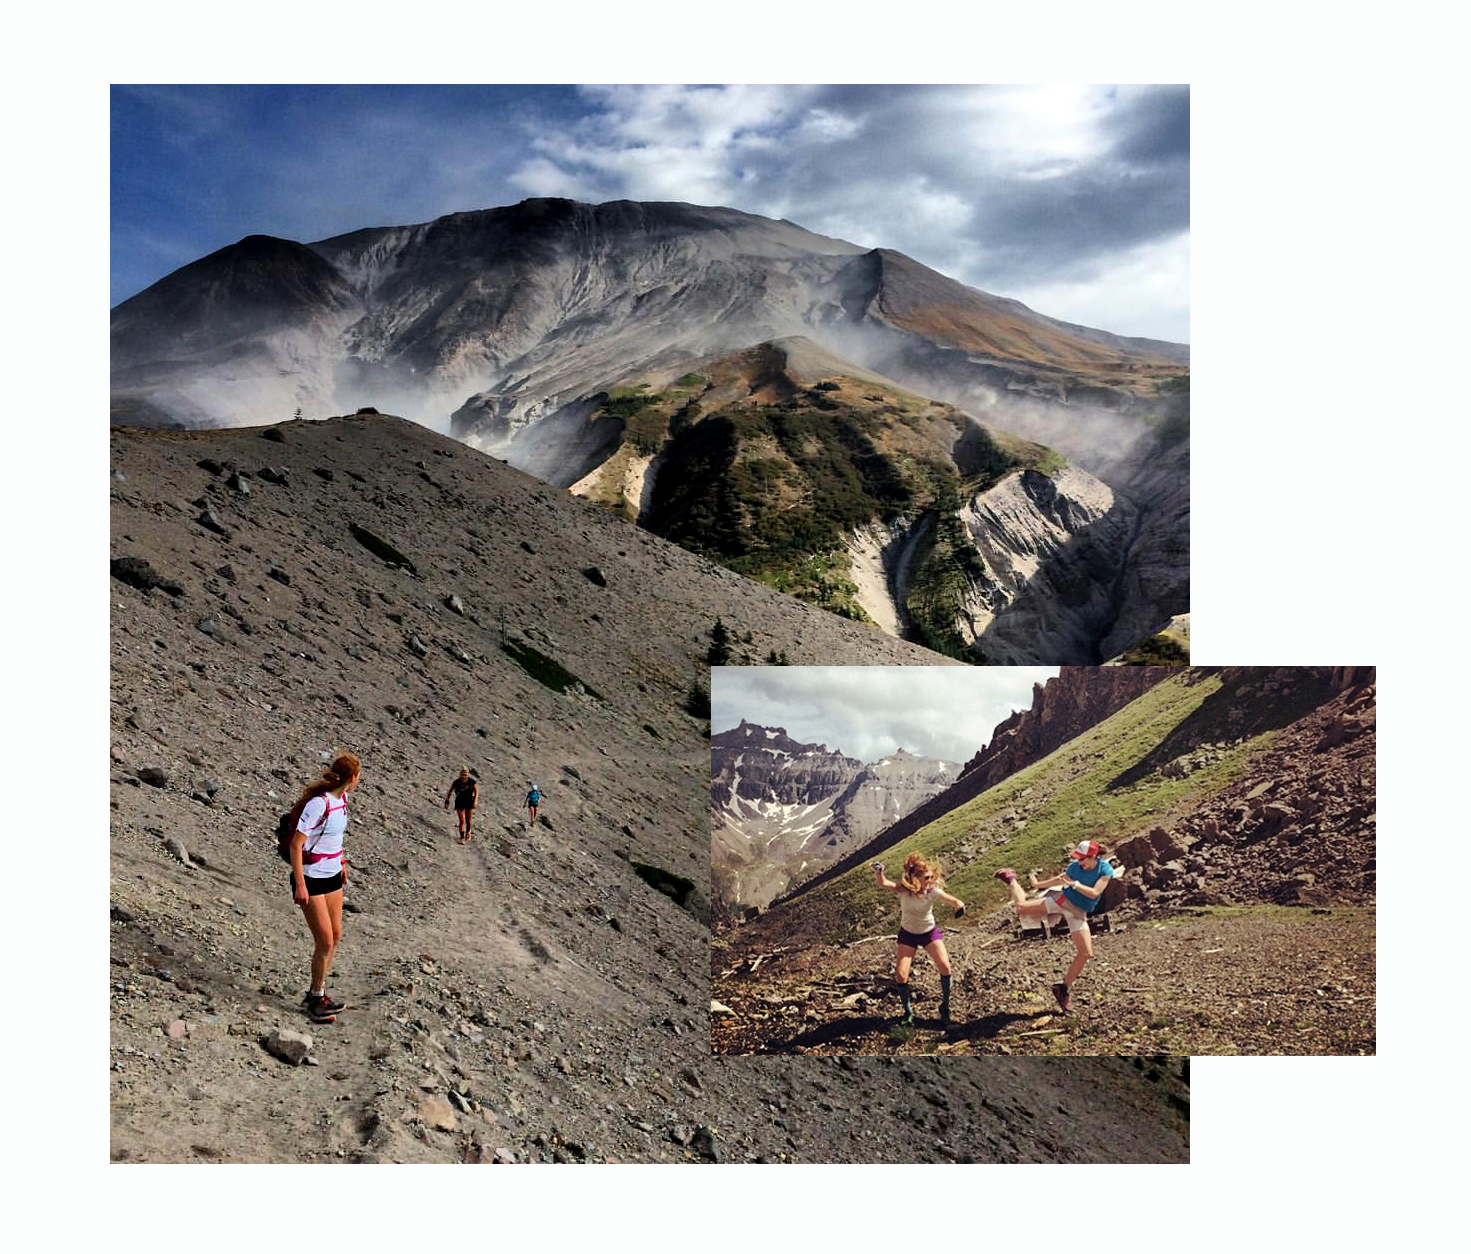 From left to right: A circumnavigation of Mt. St. Helens (photo by Tara Berry). On right, playing in Colorado's beautiful San Juan Mountains with Yitka Winn (photo by Jennifer Hughes).